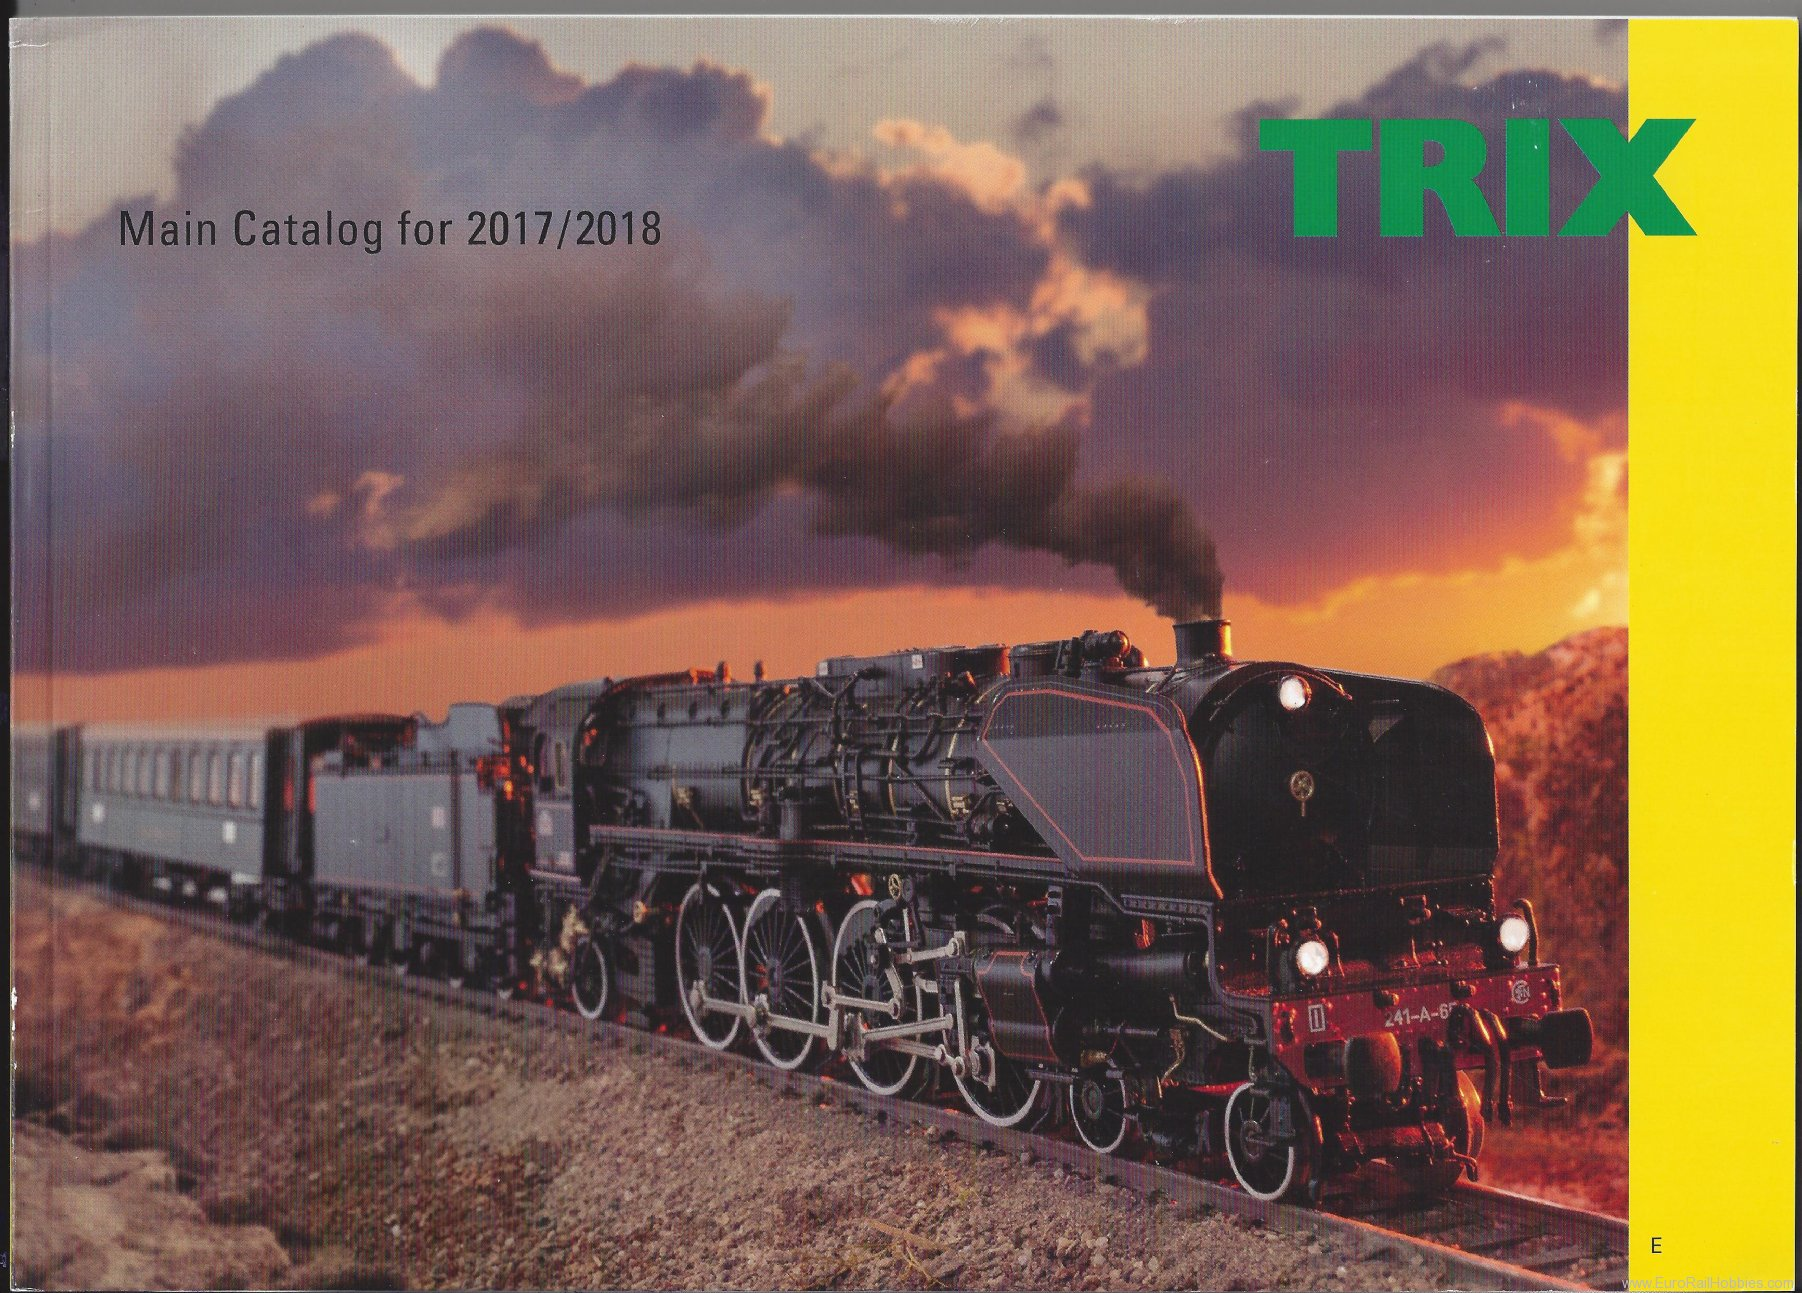 Trix 19821 Trix Main Catalog 2017/18 - ENGLISH Edition